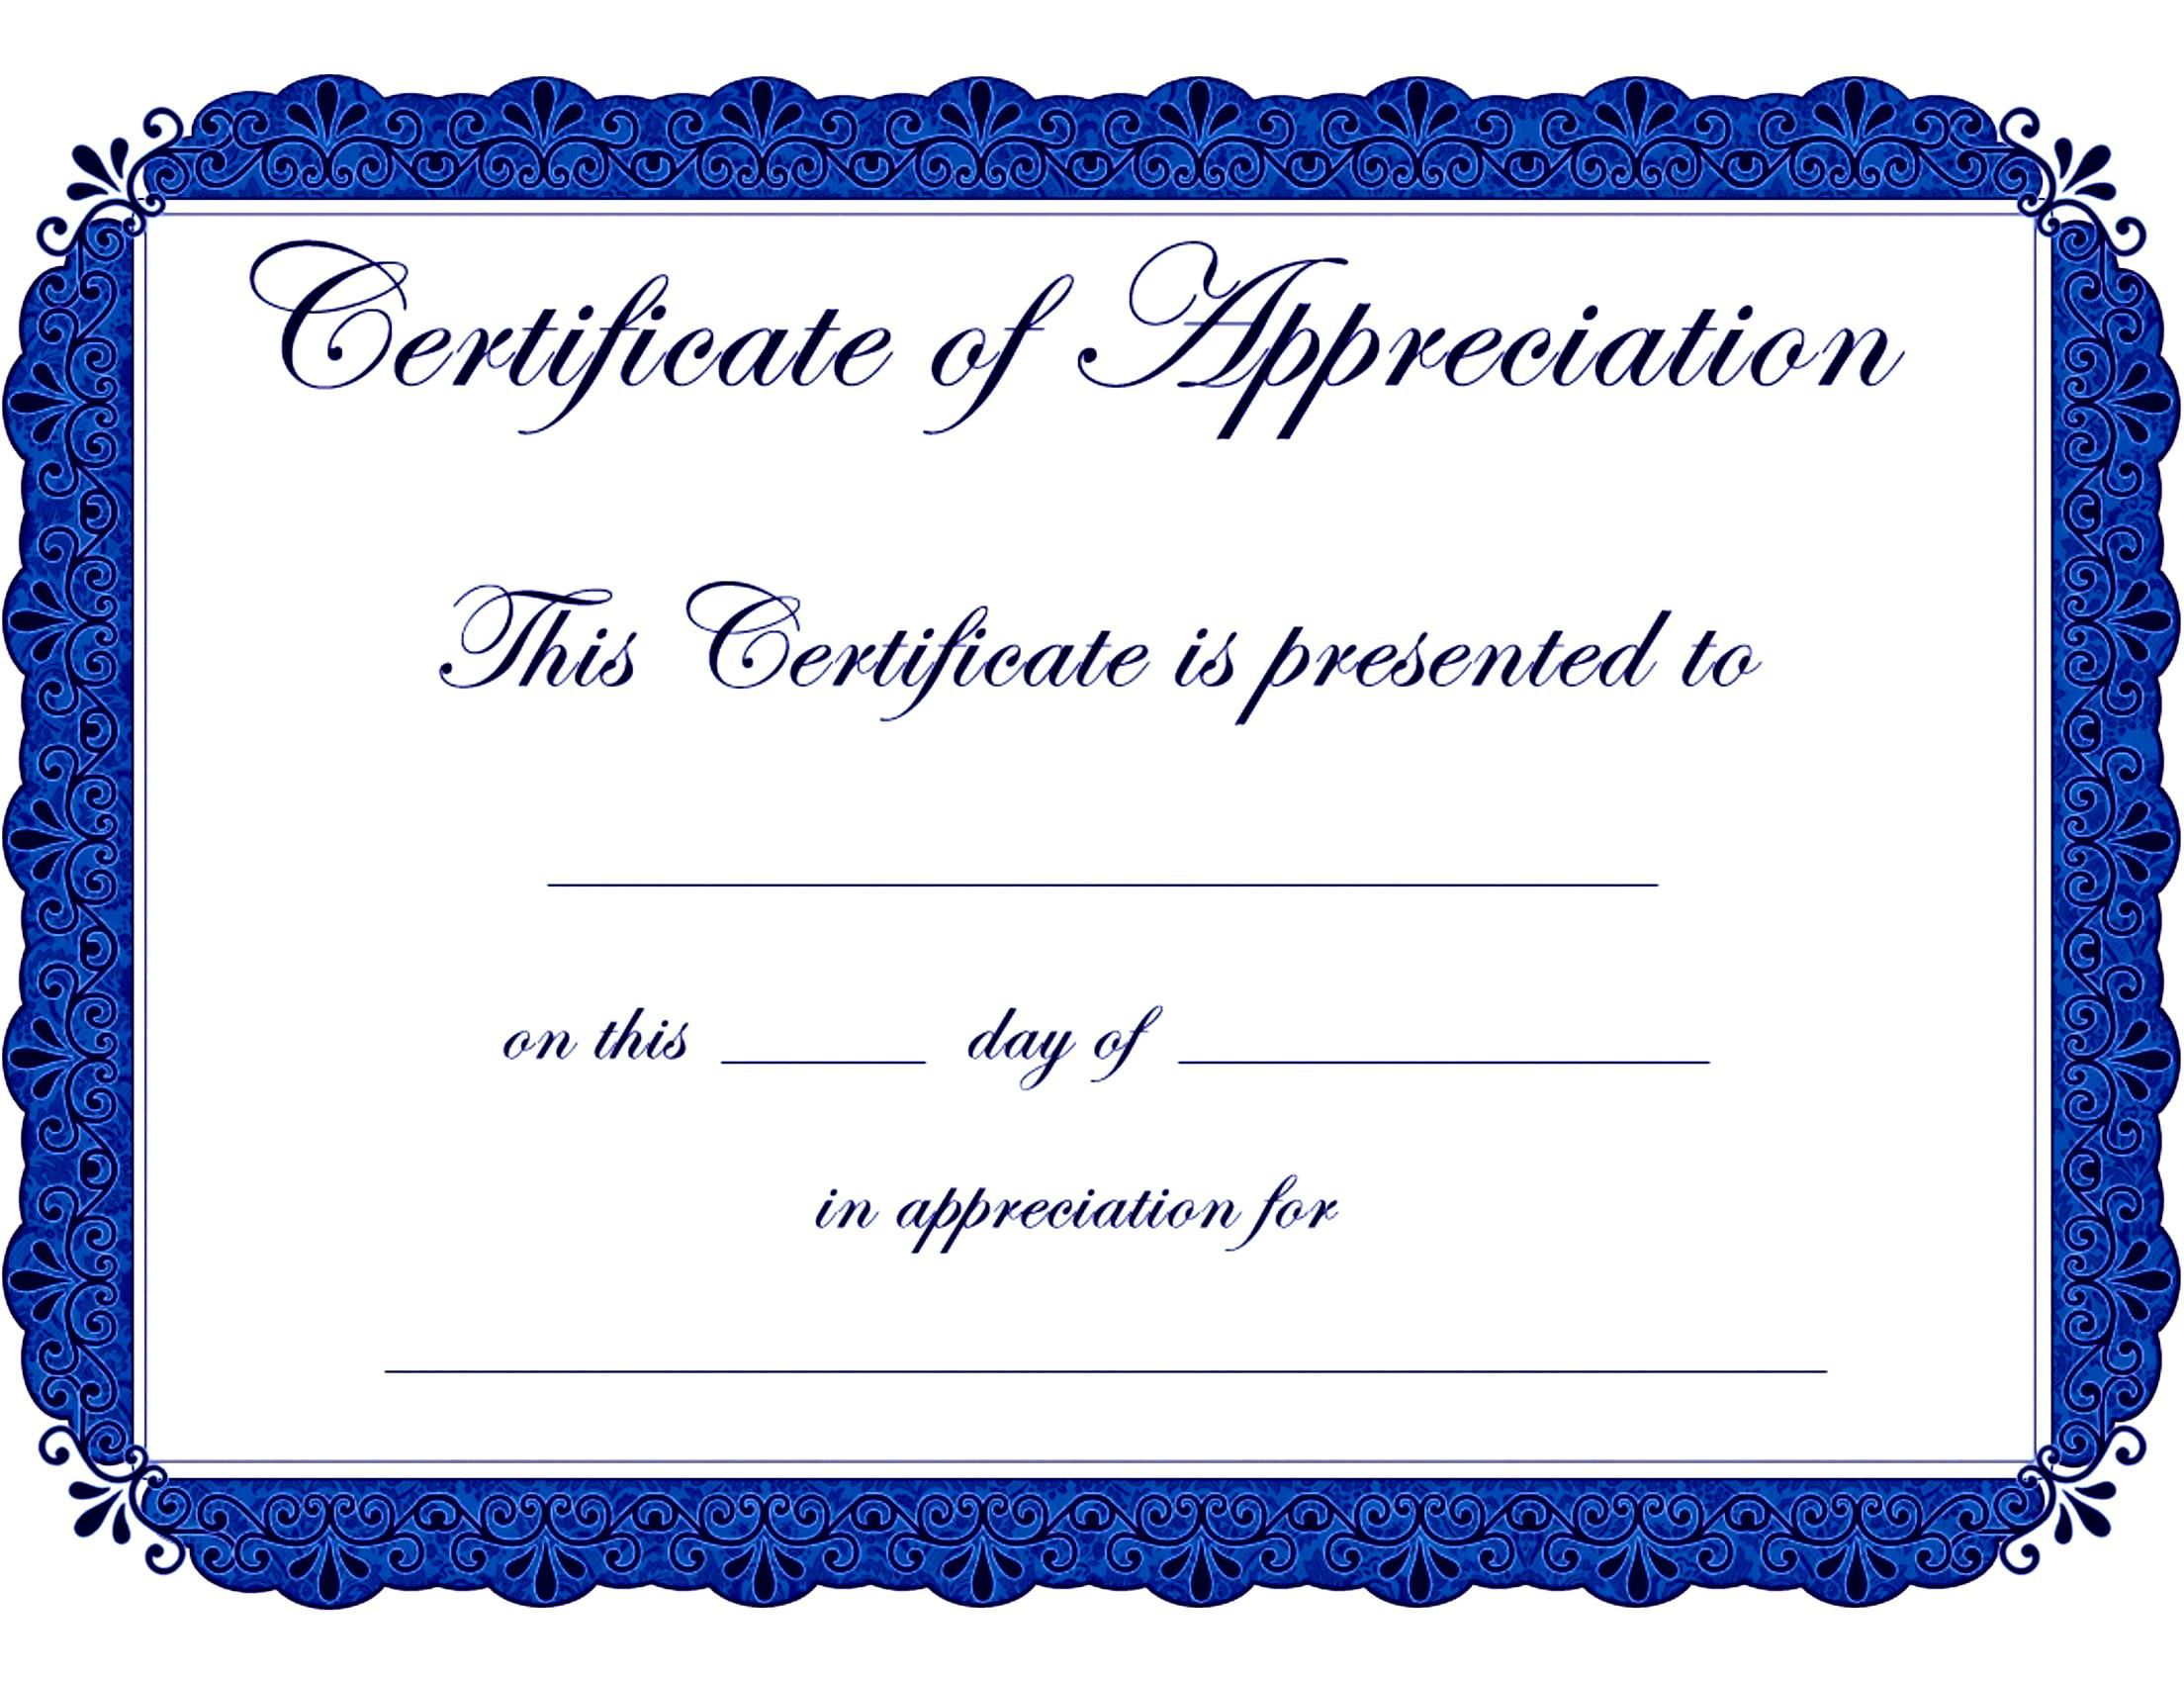 Appealing Award Template Word For Certificate Of Appreciation With Blue  Color Theme And Floral Motif :  Blank Certificate Templates For Word